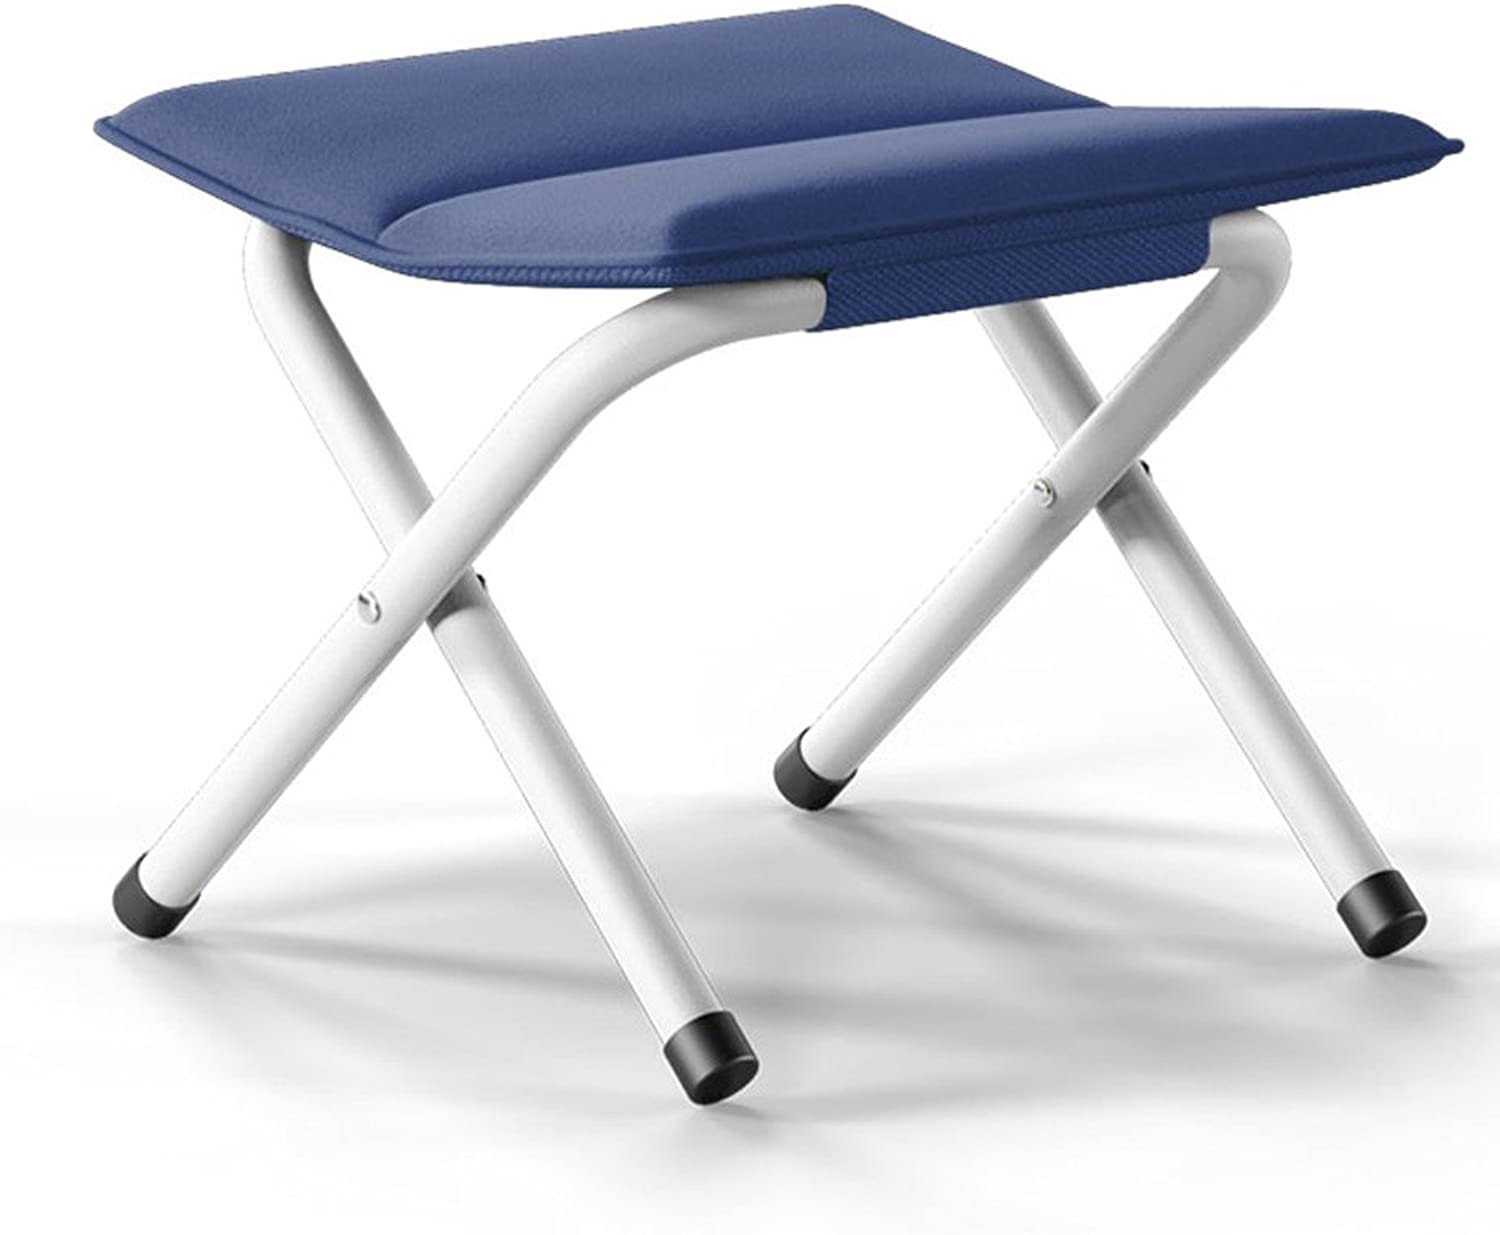 Portable Folding Stool, Thicker Chair, Fishing Horse Bar, Adult, Outdoors, Train Bench, Changing shoes Stool ( color   Navy )